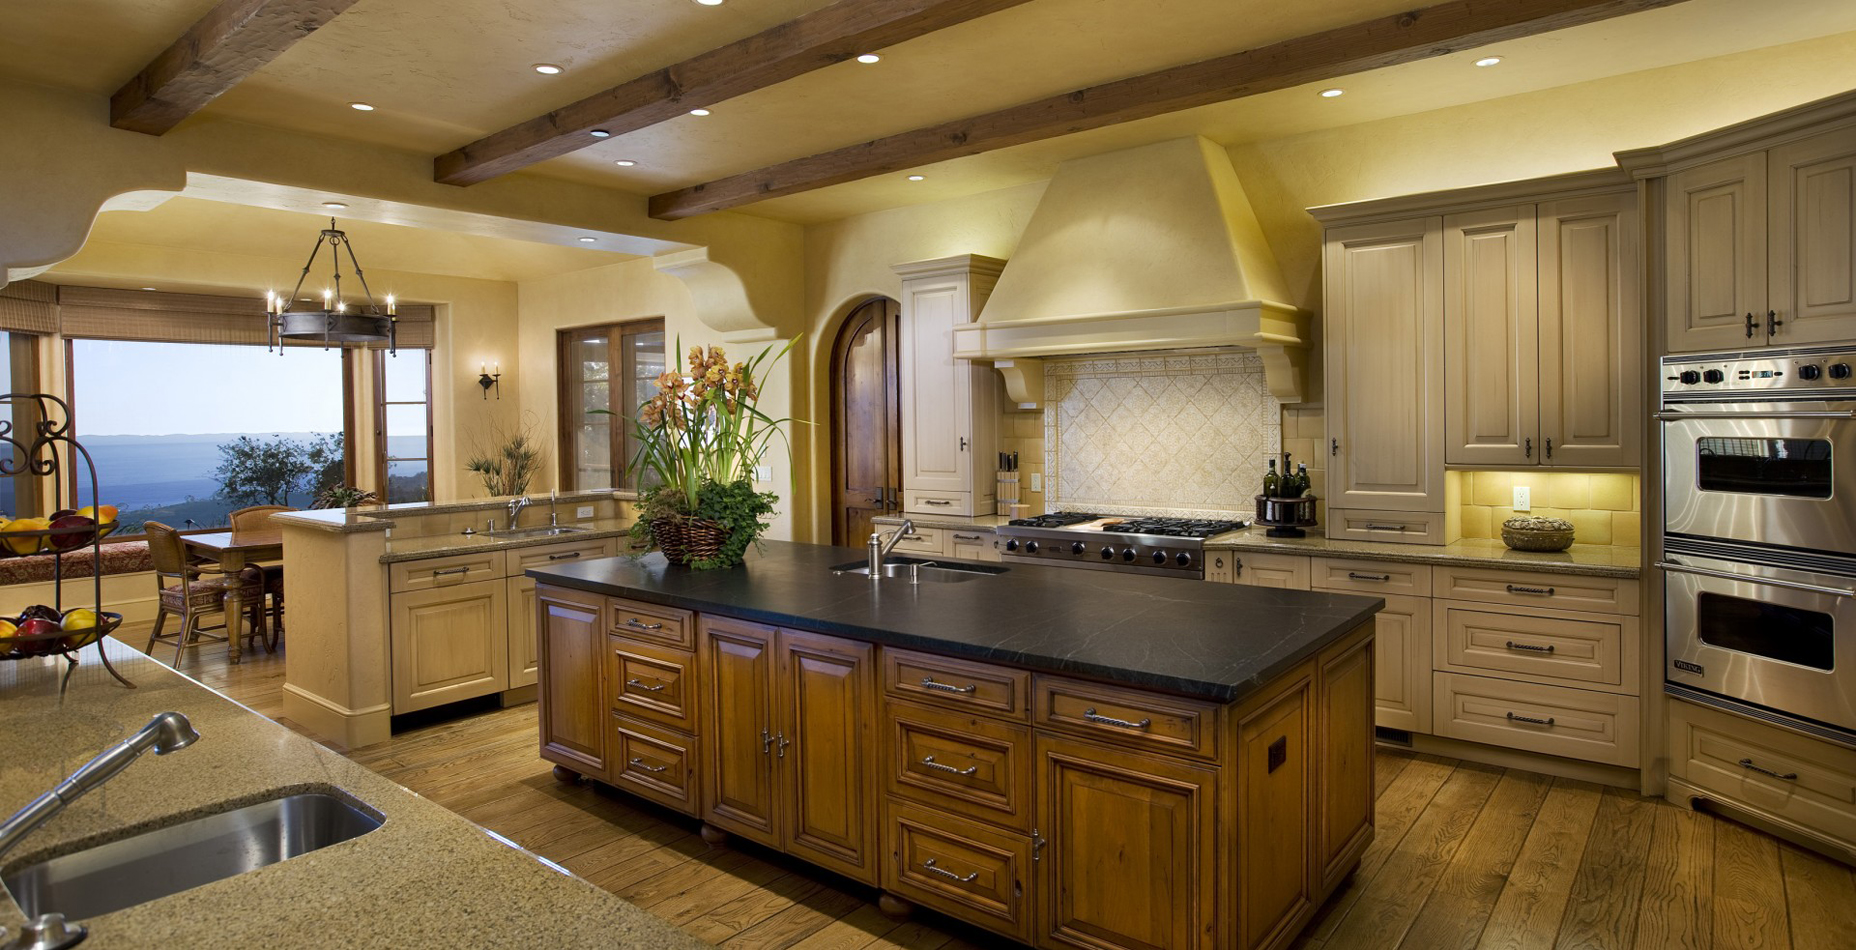 swanstone kitchen home design inspiration colors sinks countertop countertops